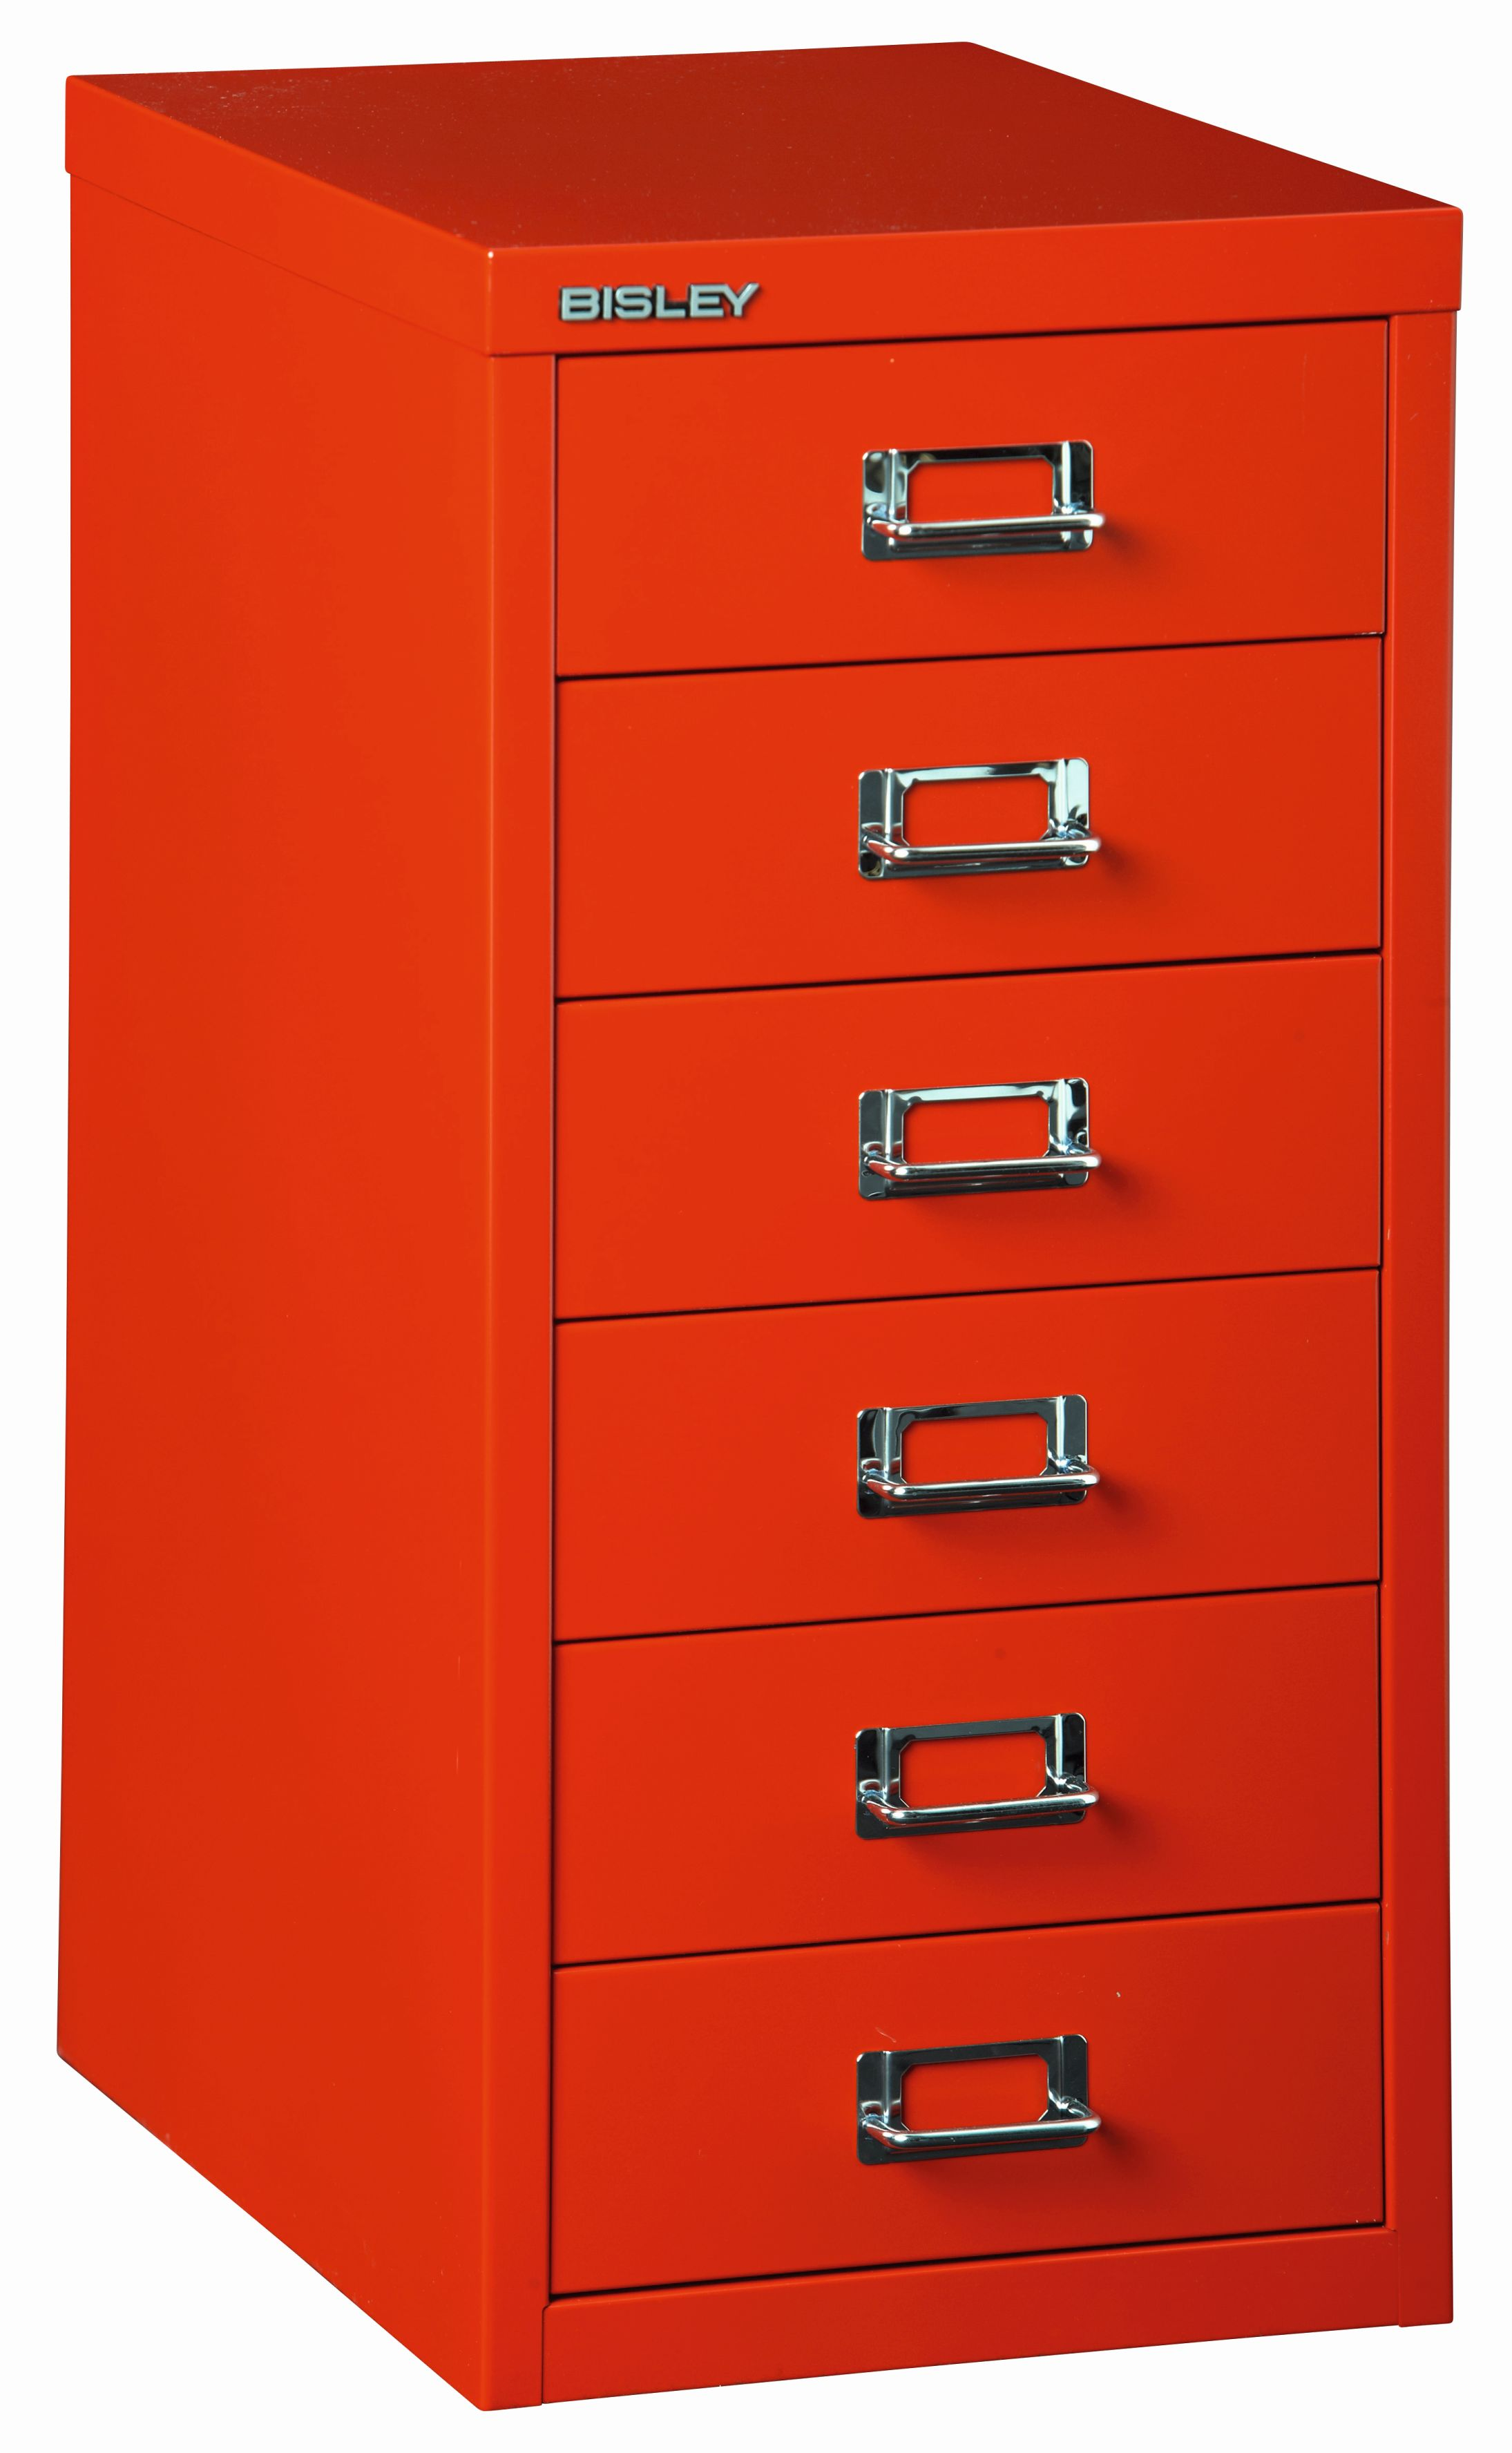 Stahlmoebel Perfect De Bisley Multidrawer 29er Serie